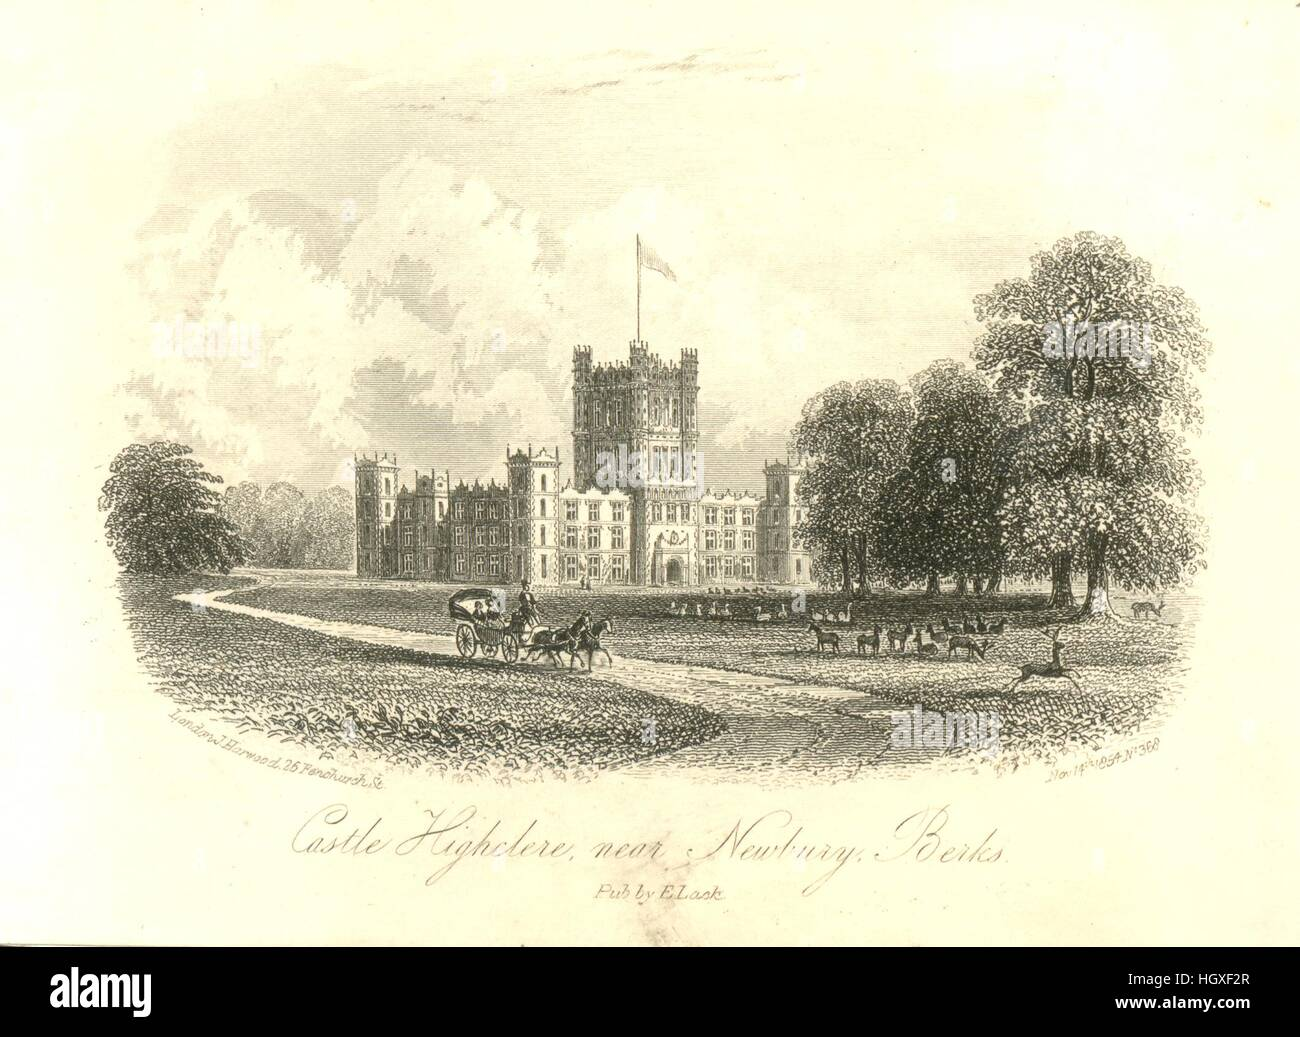 Pictorial writing paper  titled Castle Highclere, near Newbury, Berks. - Stock Image